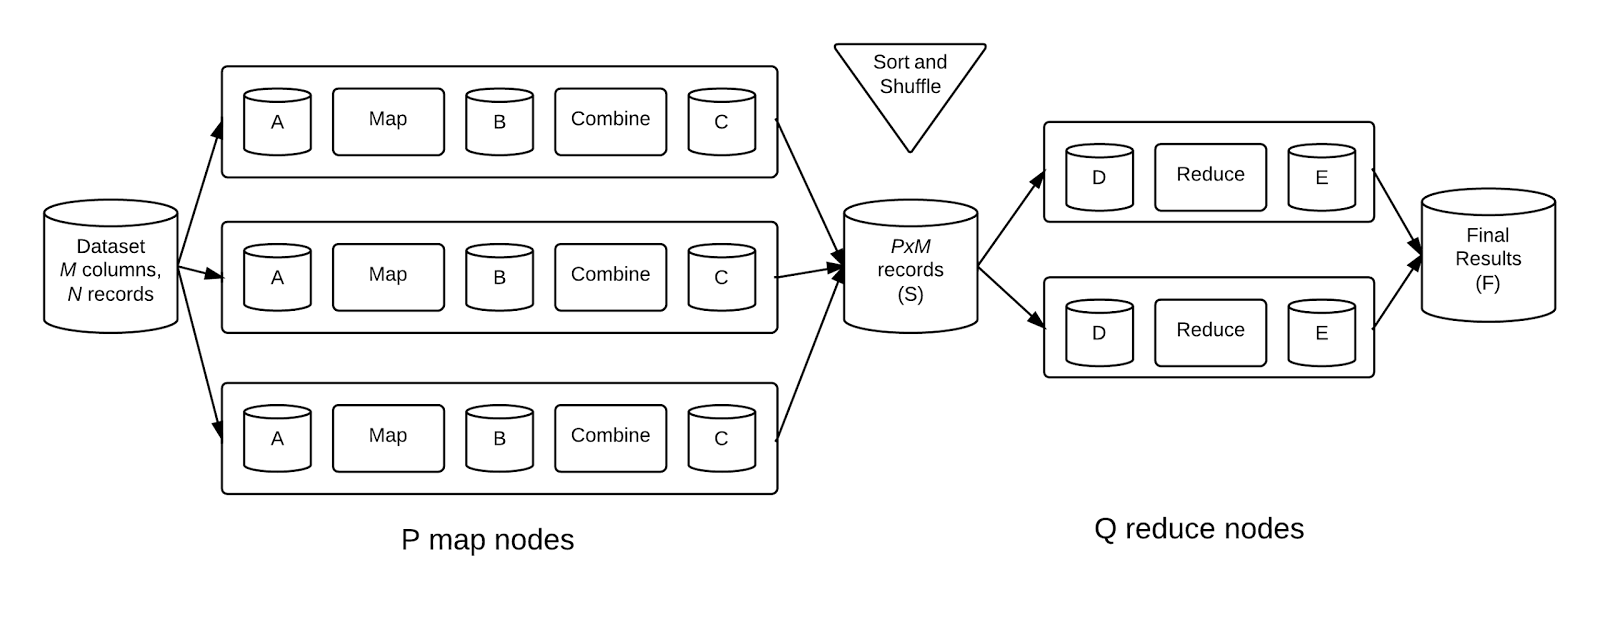 abstract model of hadoop i o processing